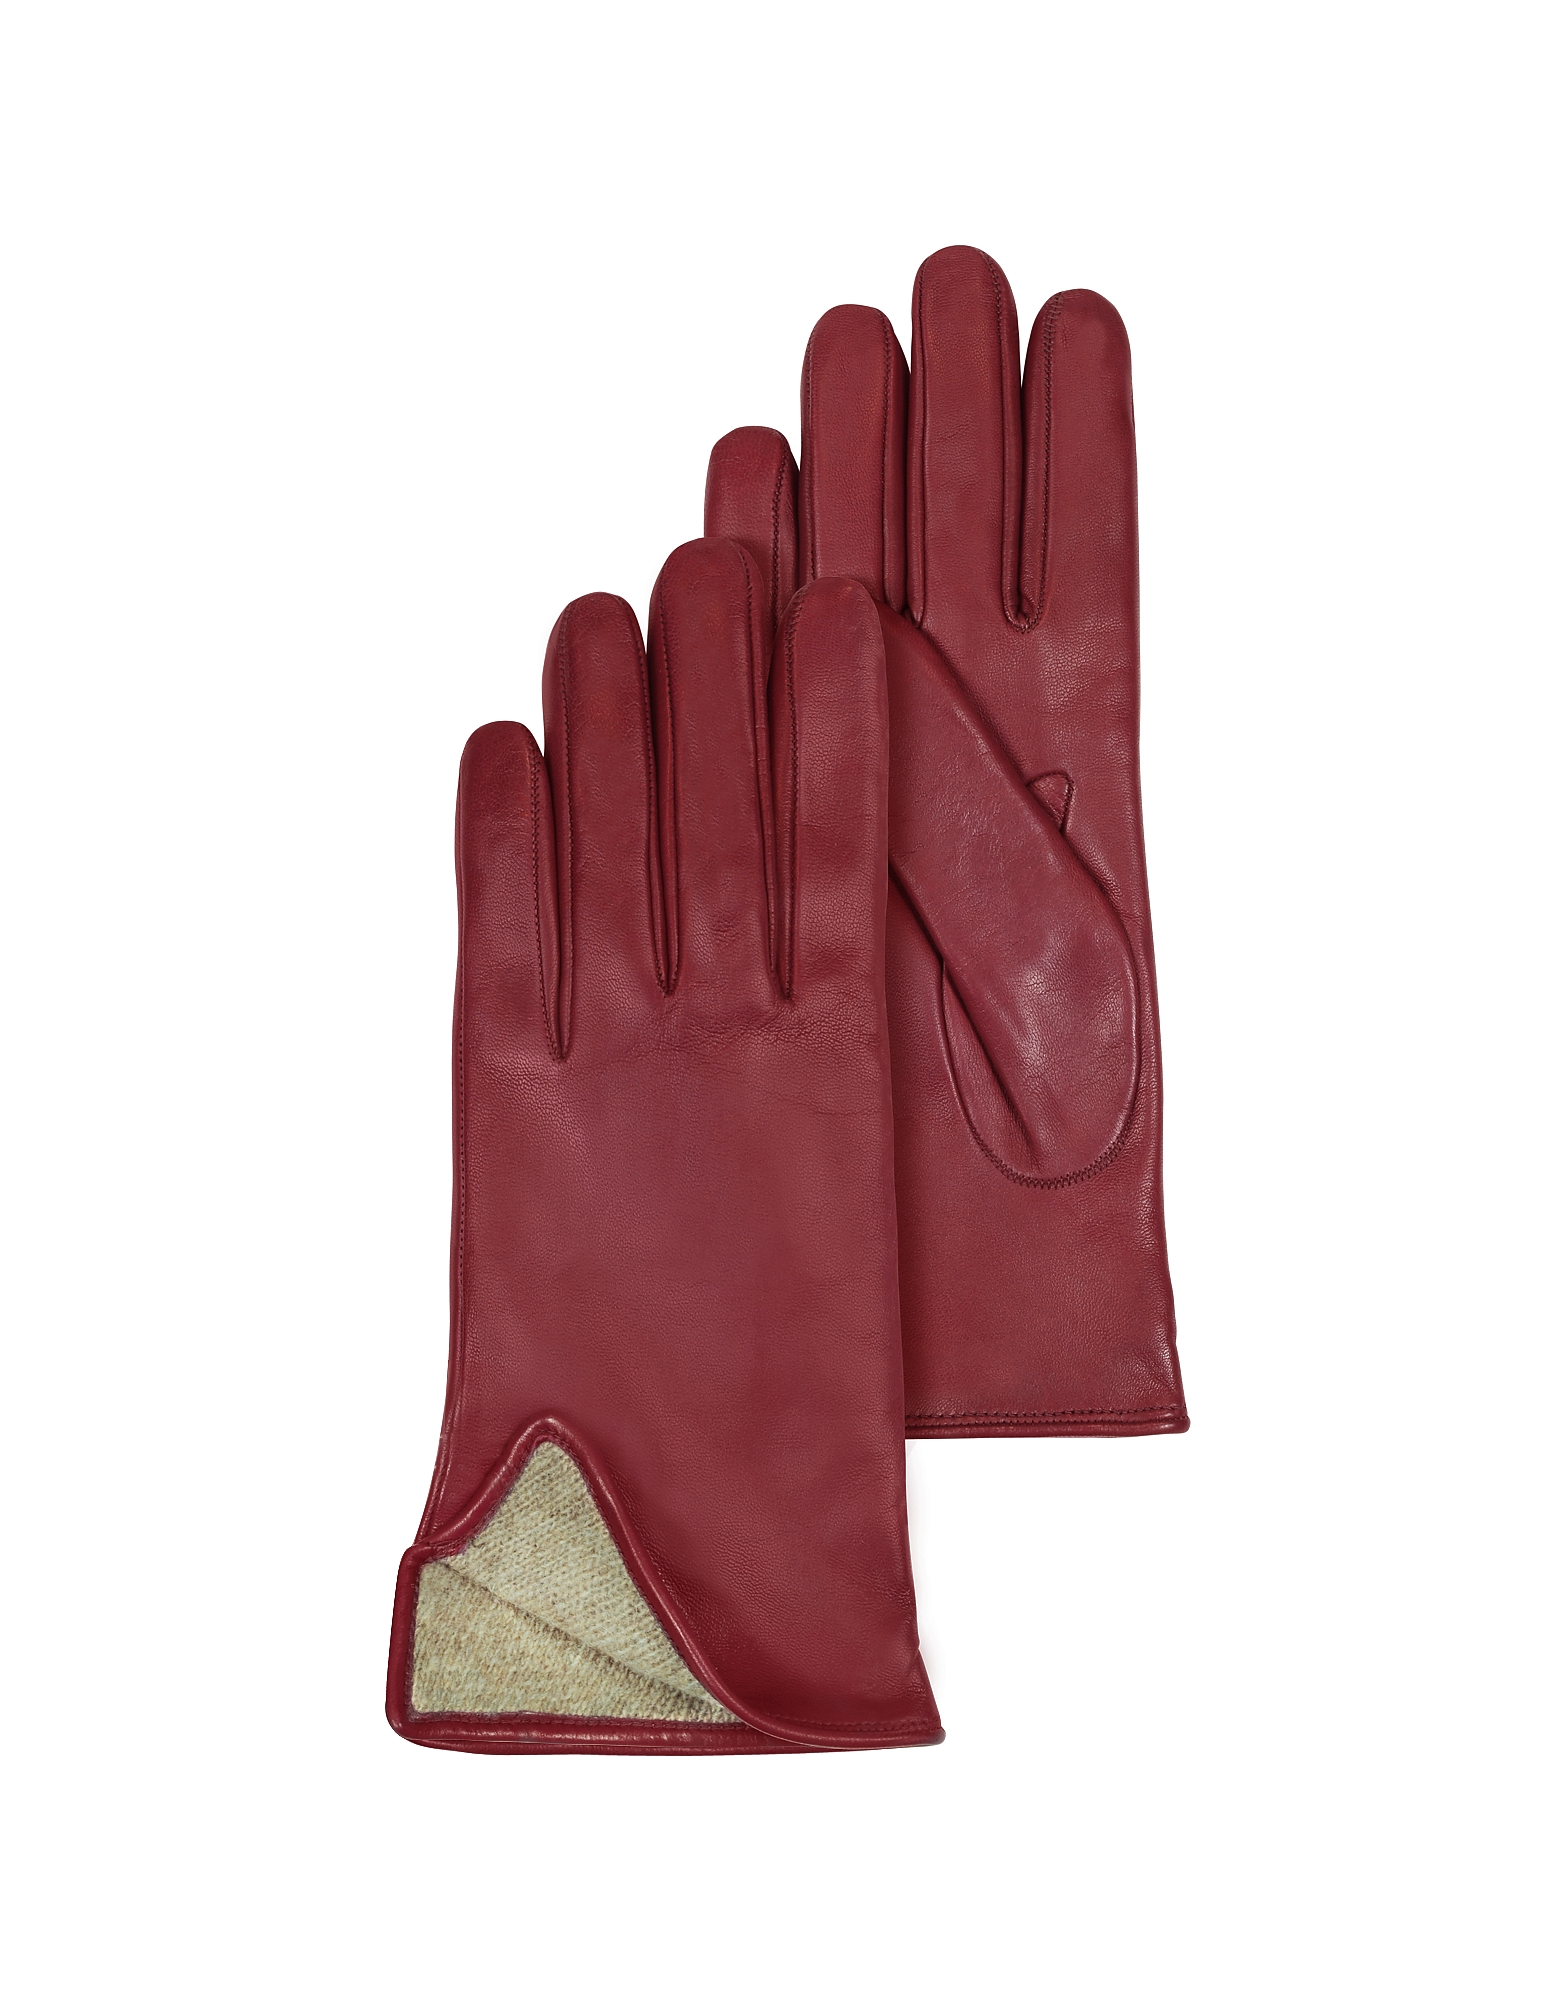 Burgundy Leather Women's Gloves w/Cashmere Lining от Forzieri.com INT